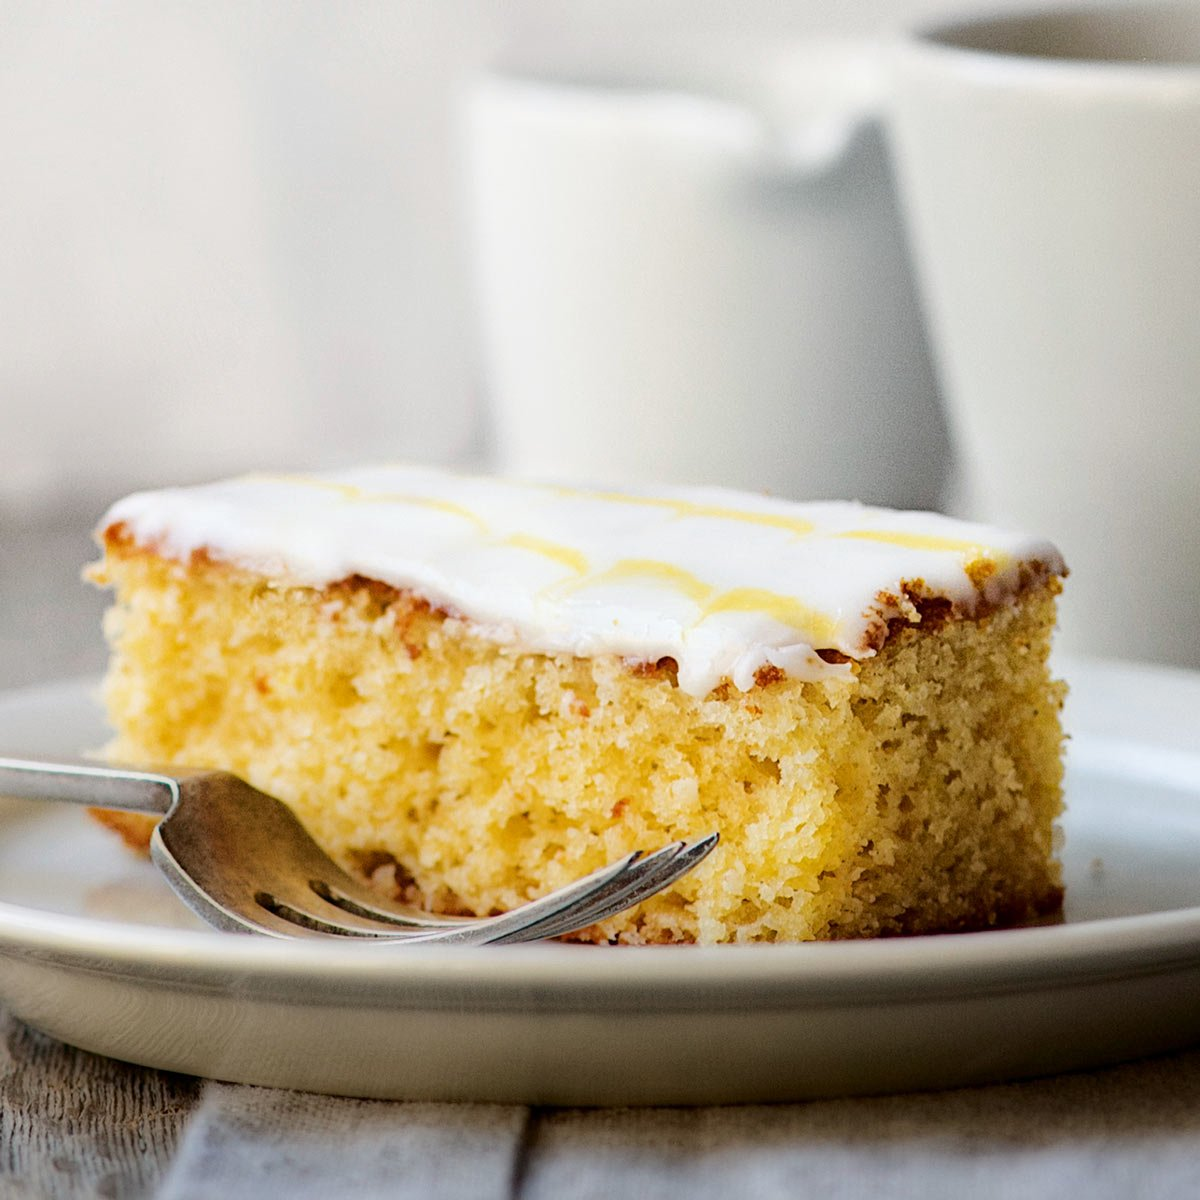 Our favourite easy peasy baking recipes... https://t.co/96EFoHUmGX https://t.co/GO0Rxq9IH3